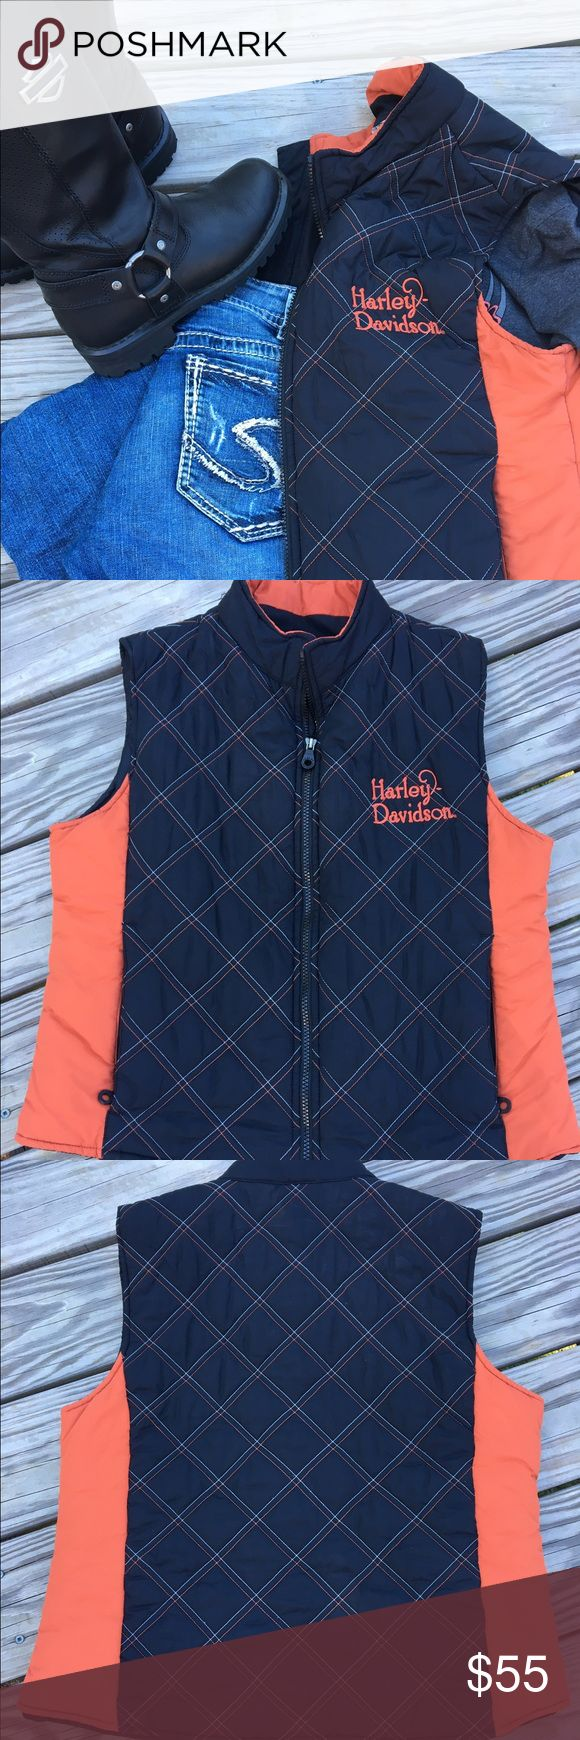 🌟30% BUNDLE SALE🌟 Authentic Harley-Davidson vest Look great in this quilted vest 🌟 wear your favorite long sleeve shirt under it 🌟 zipper front 🌟 zipper pocket on each side 🌟 no flaws 🌟 traditional Harley orange/black 🌟 pet/smoke free home Harley-Davidson Jackets & Coats Vests